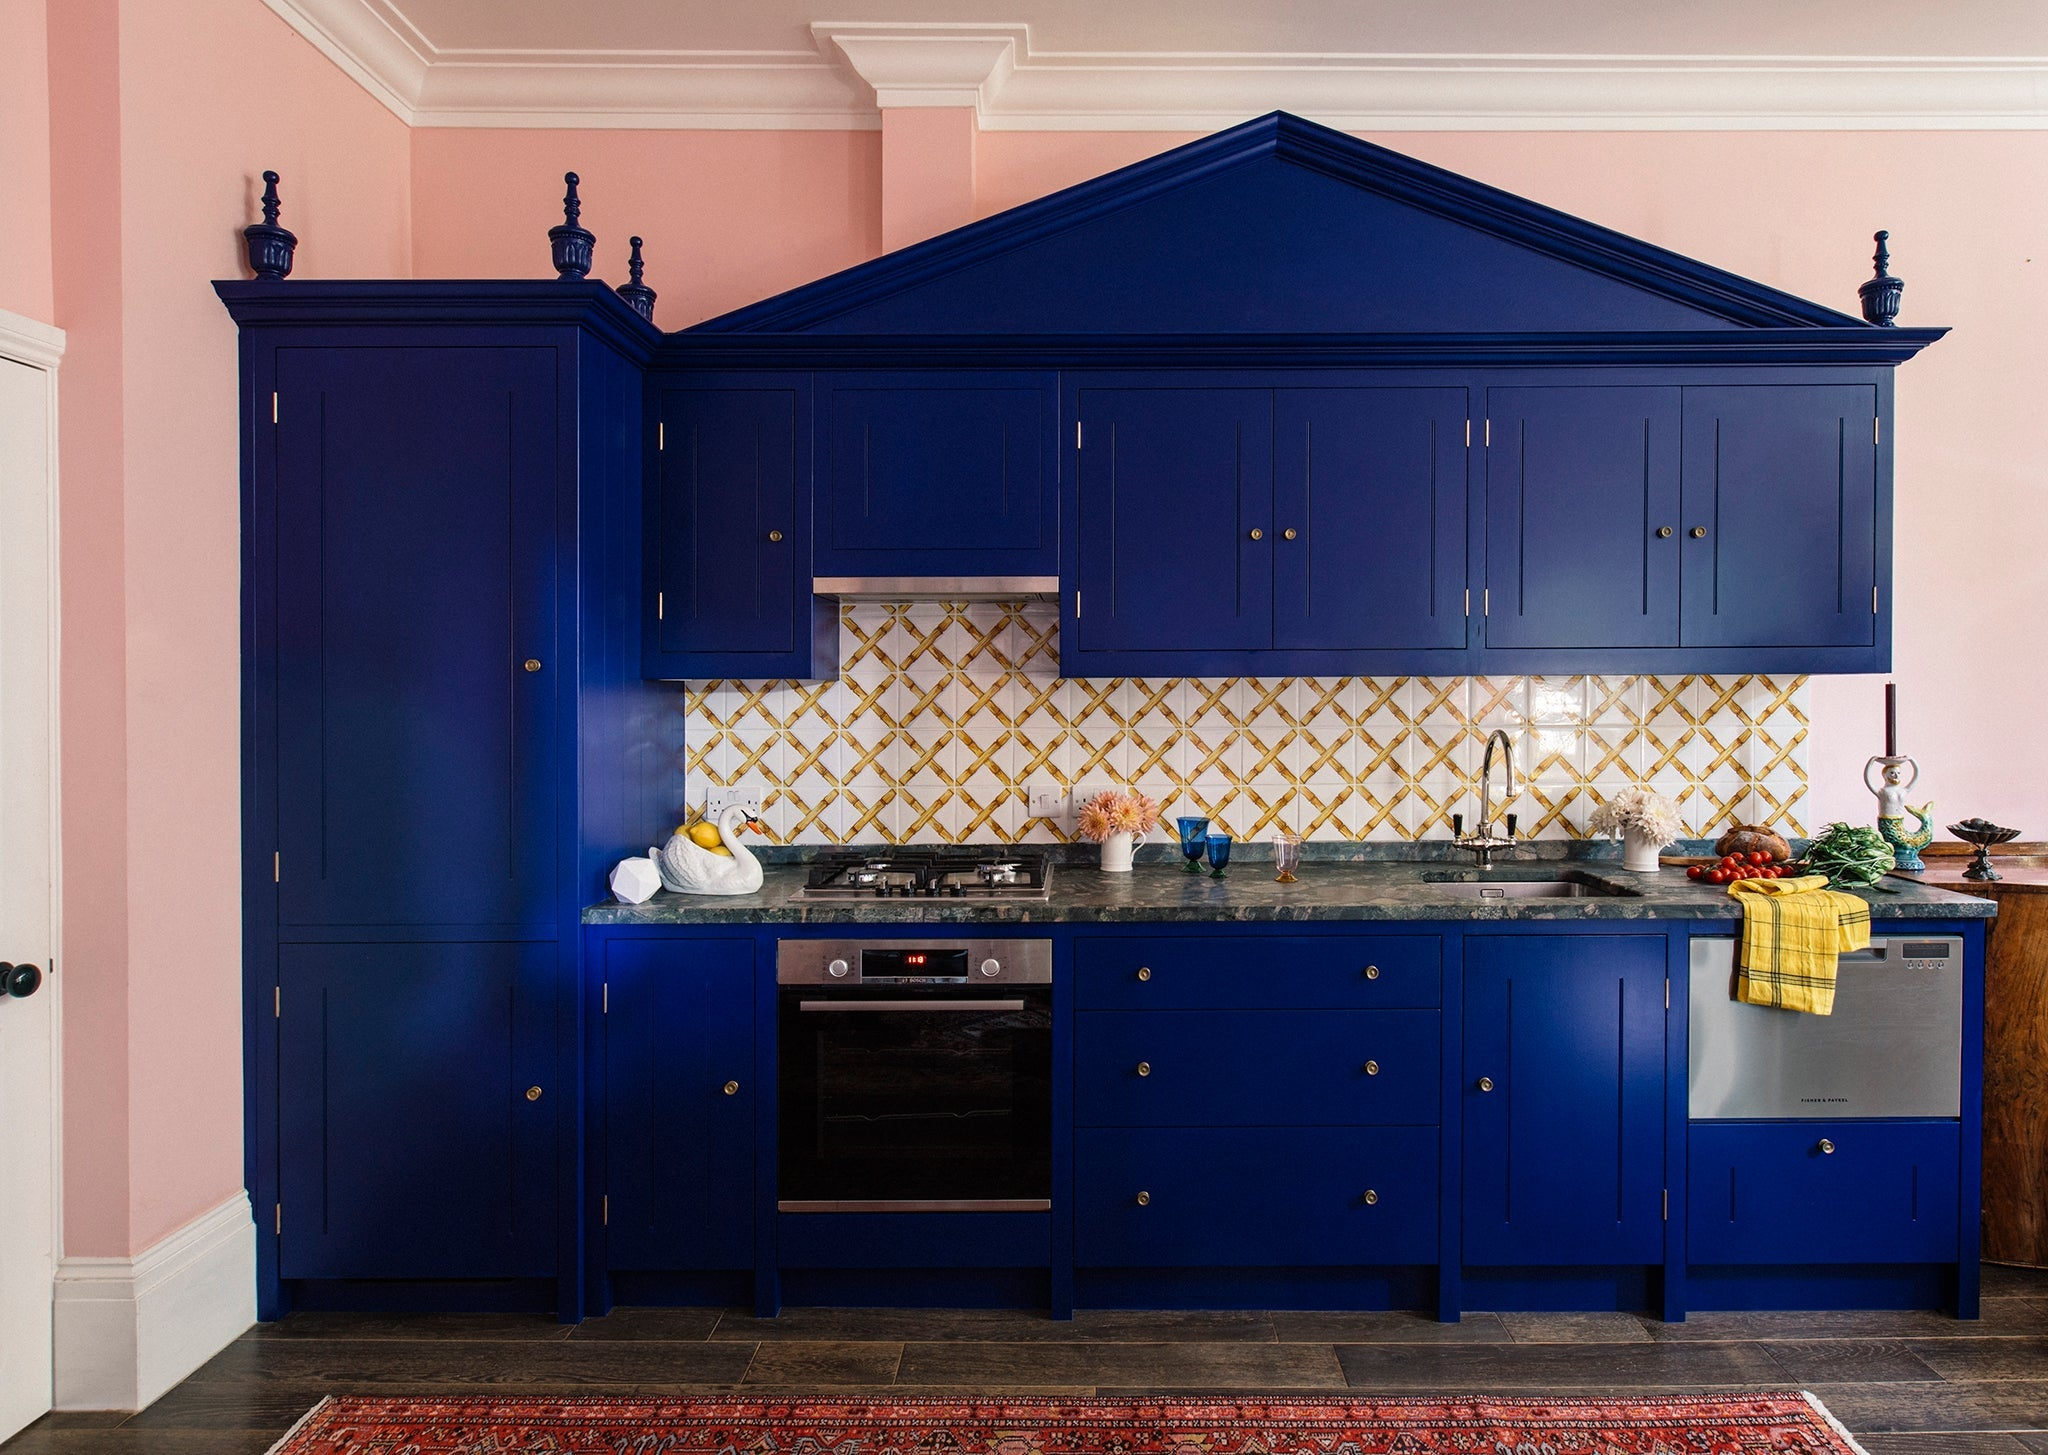 Kitchen trends for 2020: Pops of colour and textural surfaces